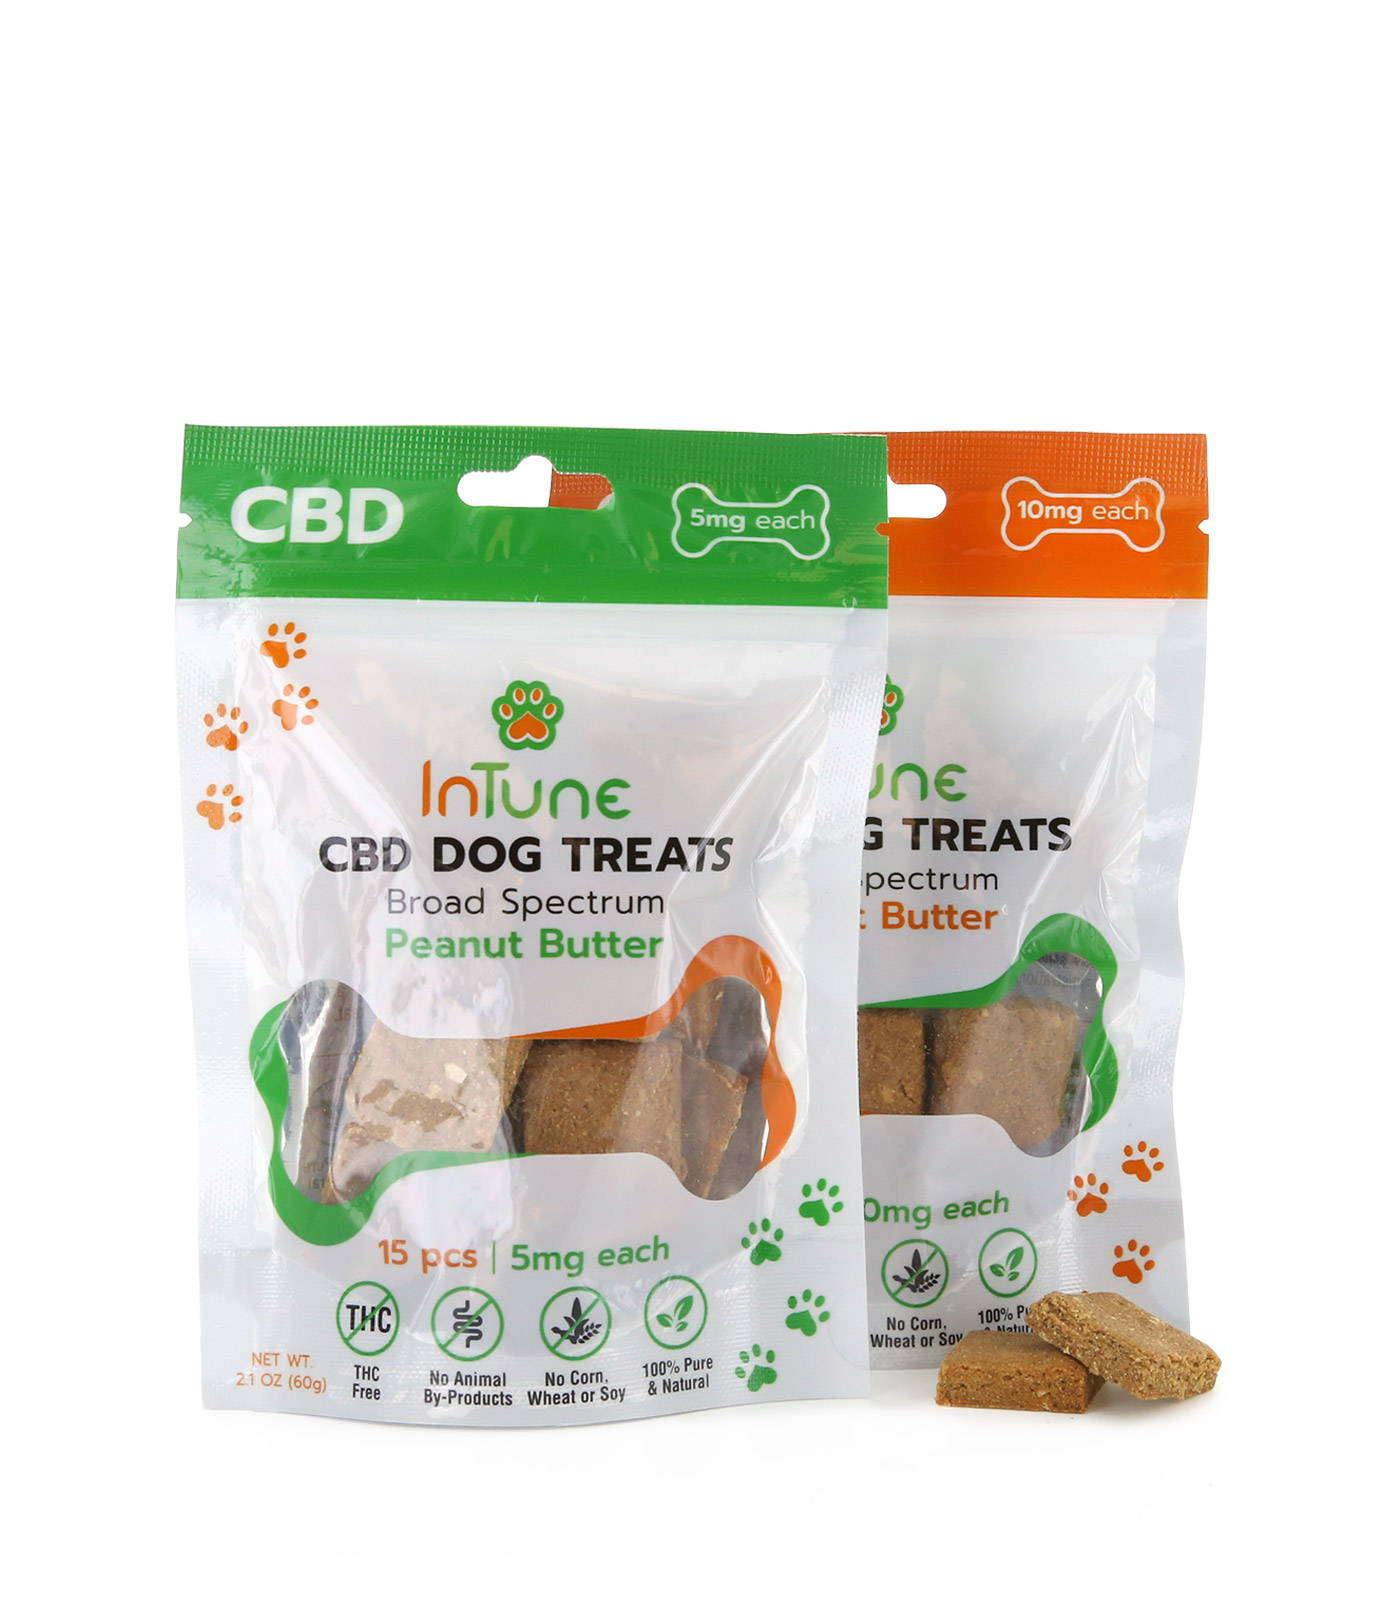 Peanut Butter Flavored Broad Spectrum CBD Dog Treats